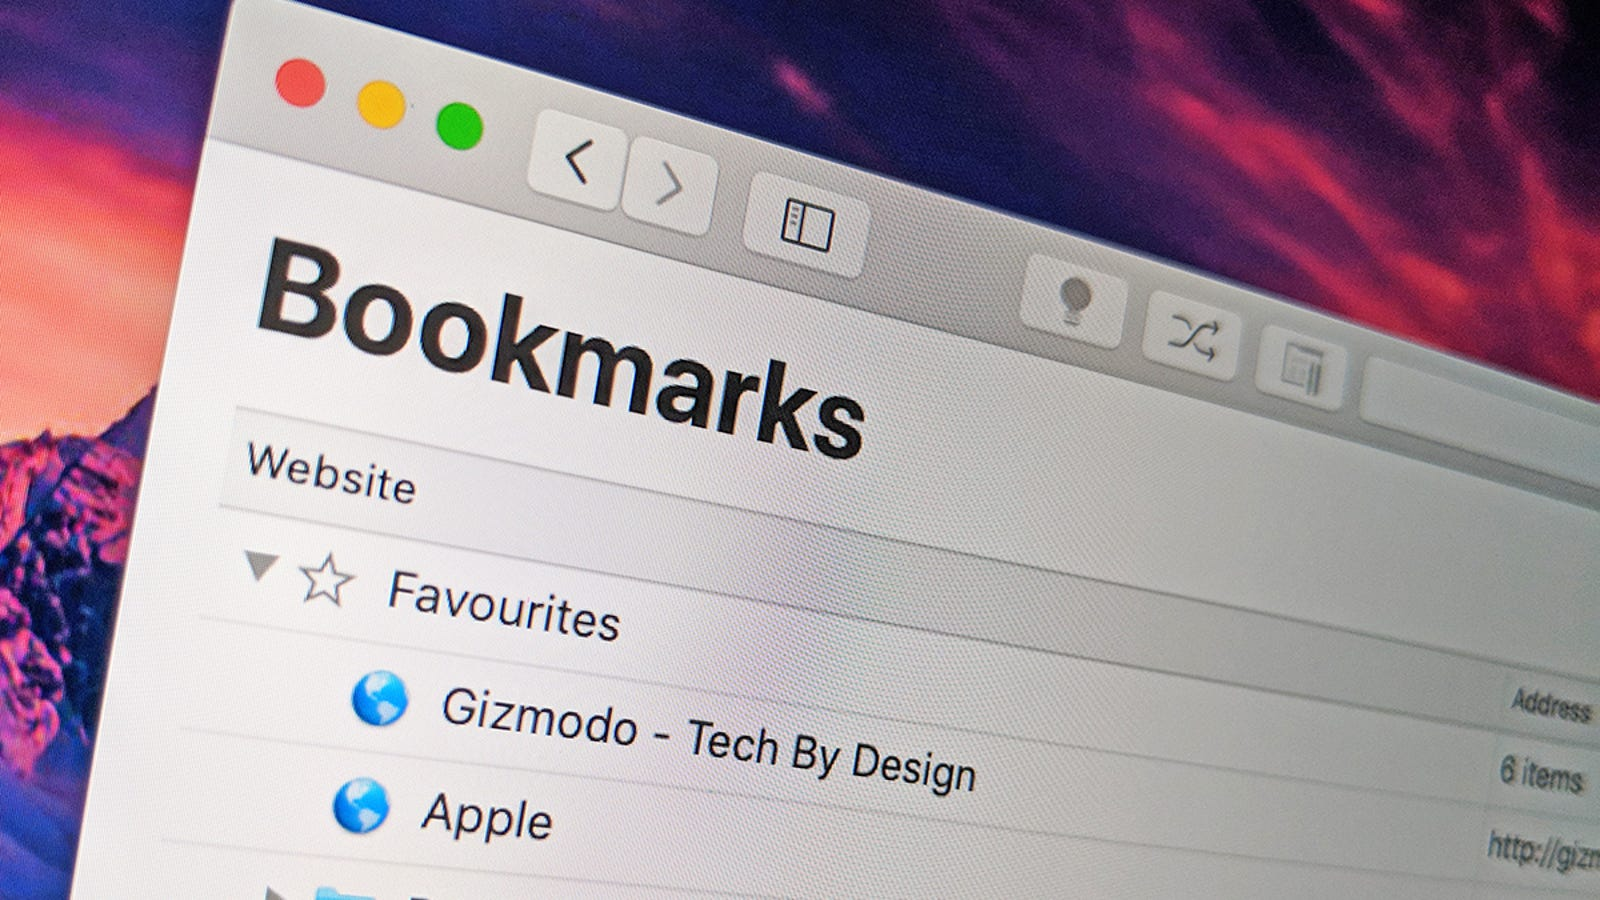 QnA VBage Rediscover the Magic of Browser Bookmarks—And How to Keep Them in Order